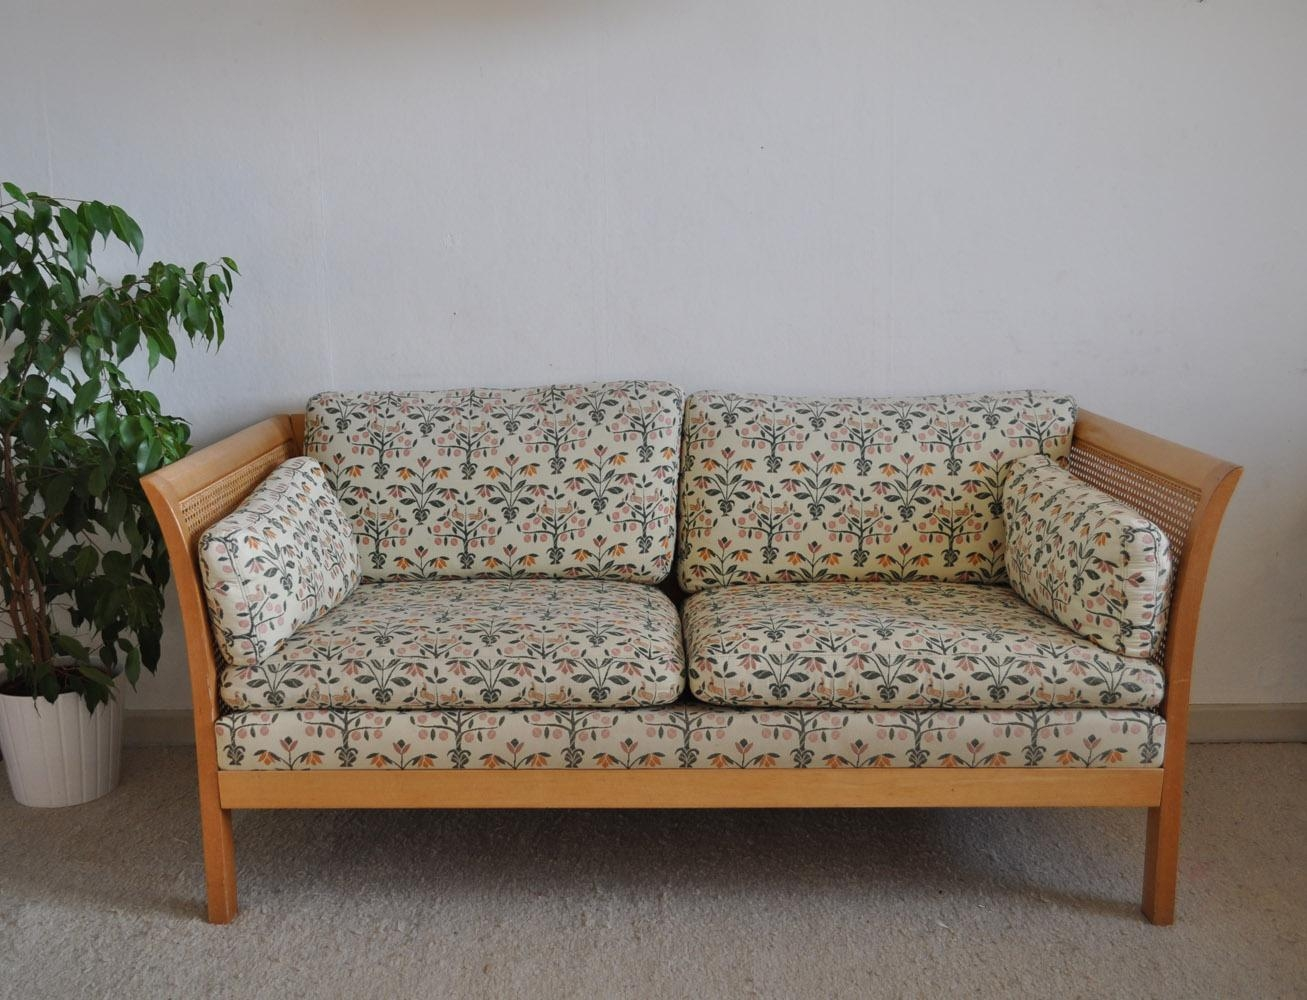 Vintage Rattan Two-Seater Sofa From Arne Norell For Sale At Pamono for Two Seater Sofas